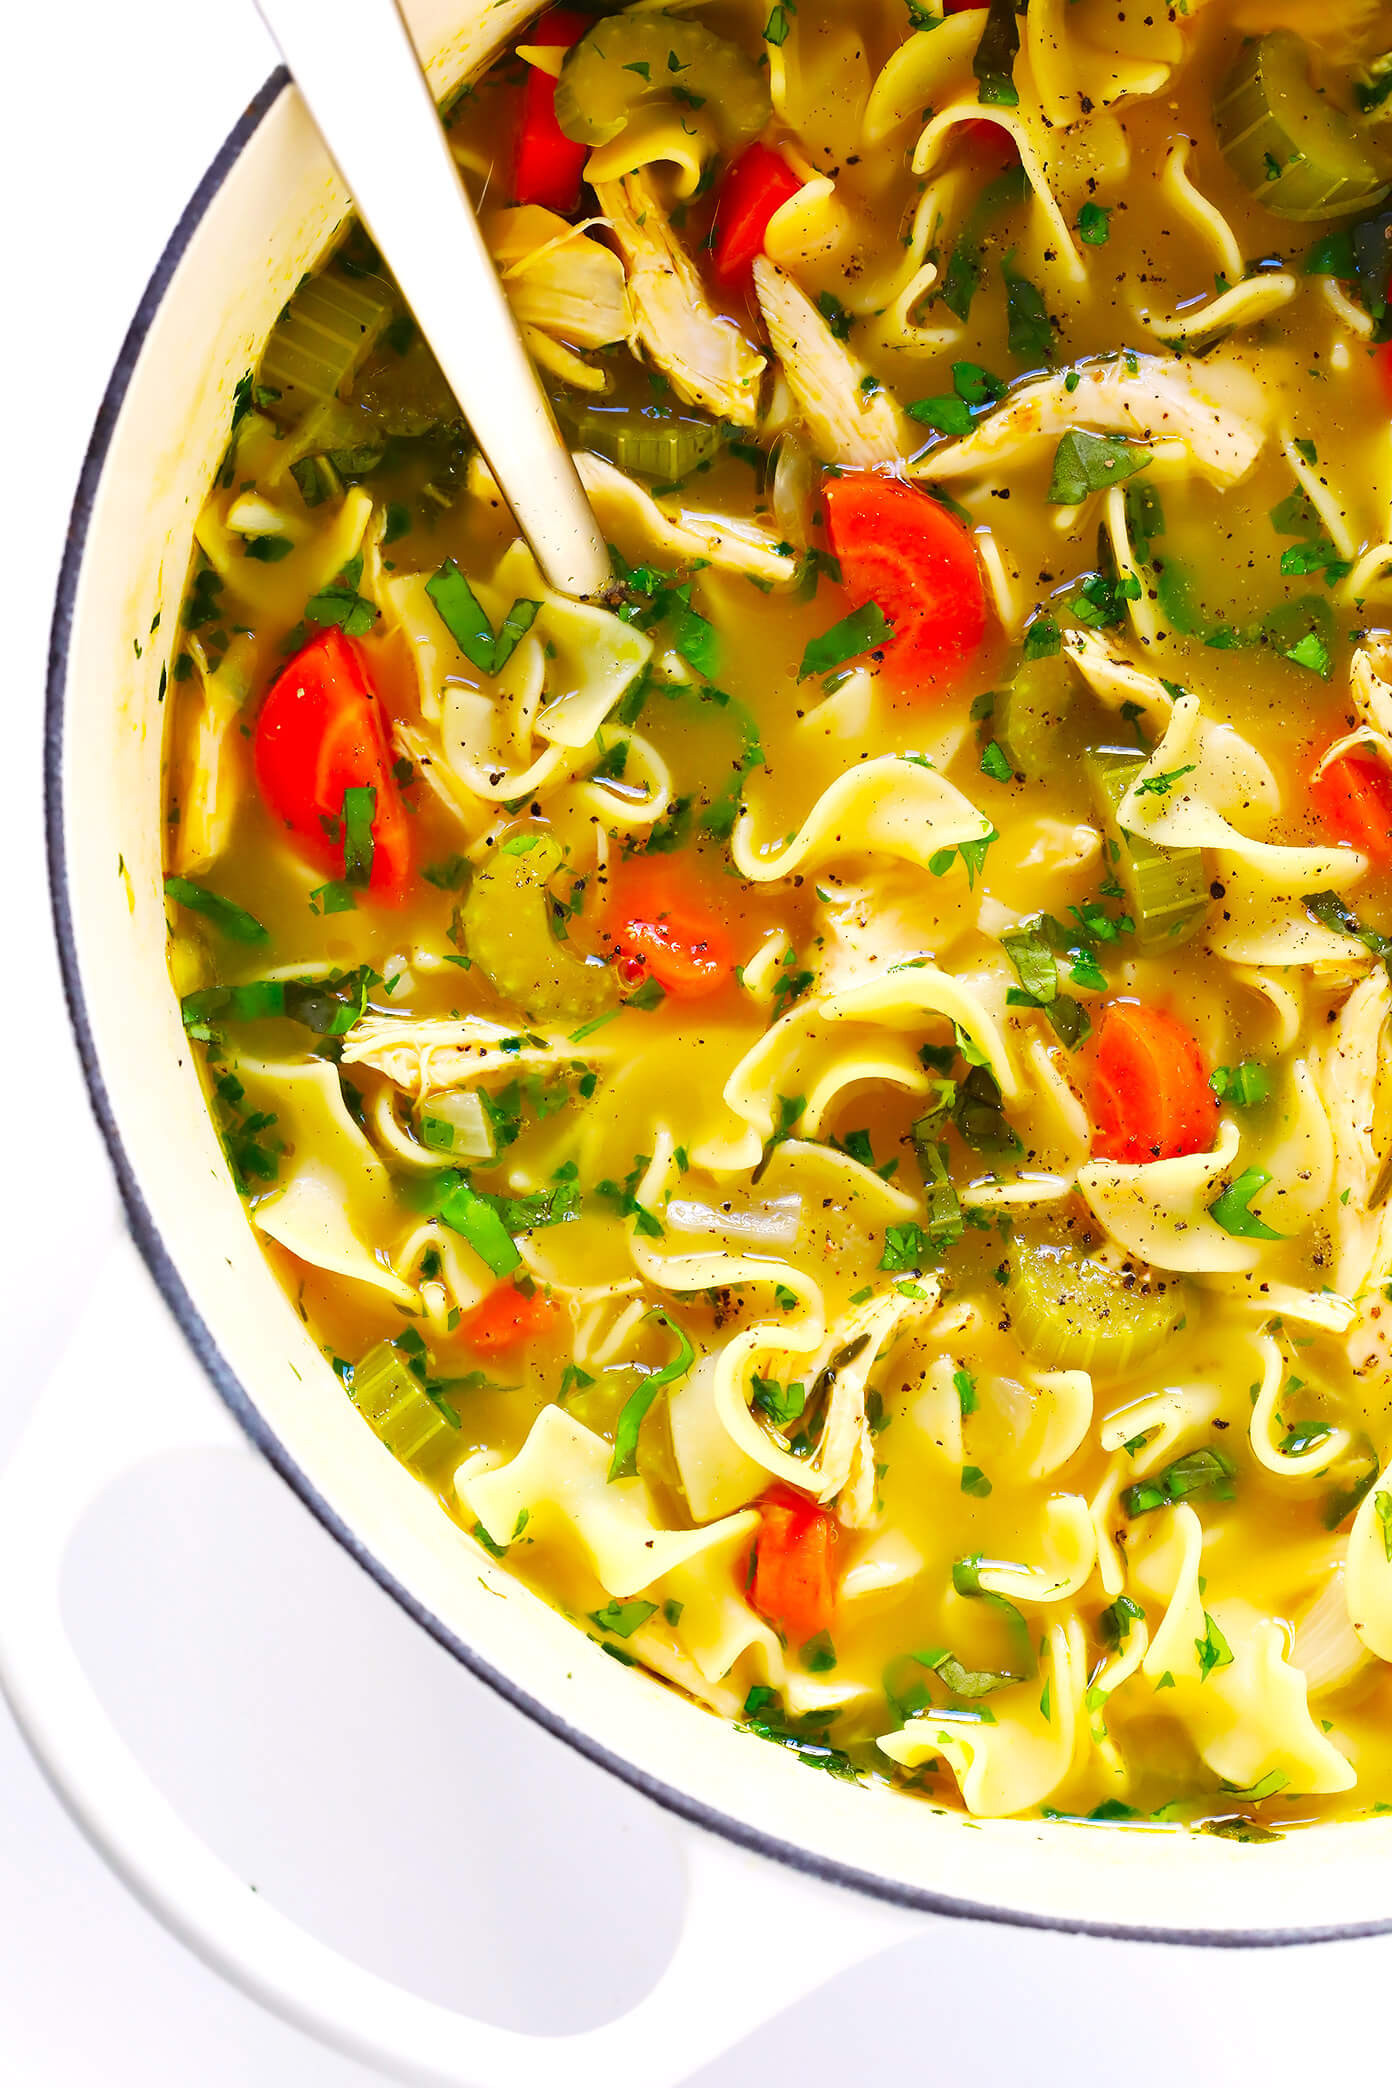 Best Chicken Noodle Soup Recipe  Herb Loaded Chicken Noodle Soup